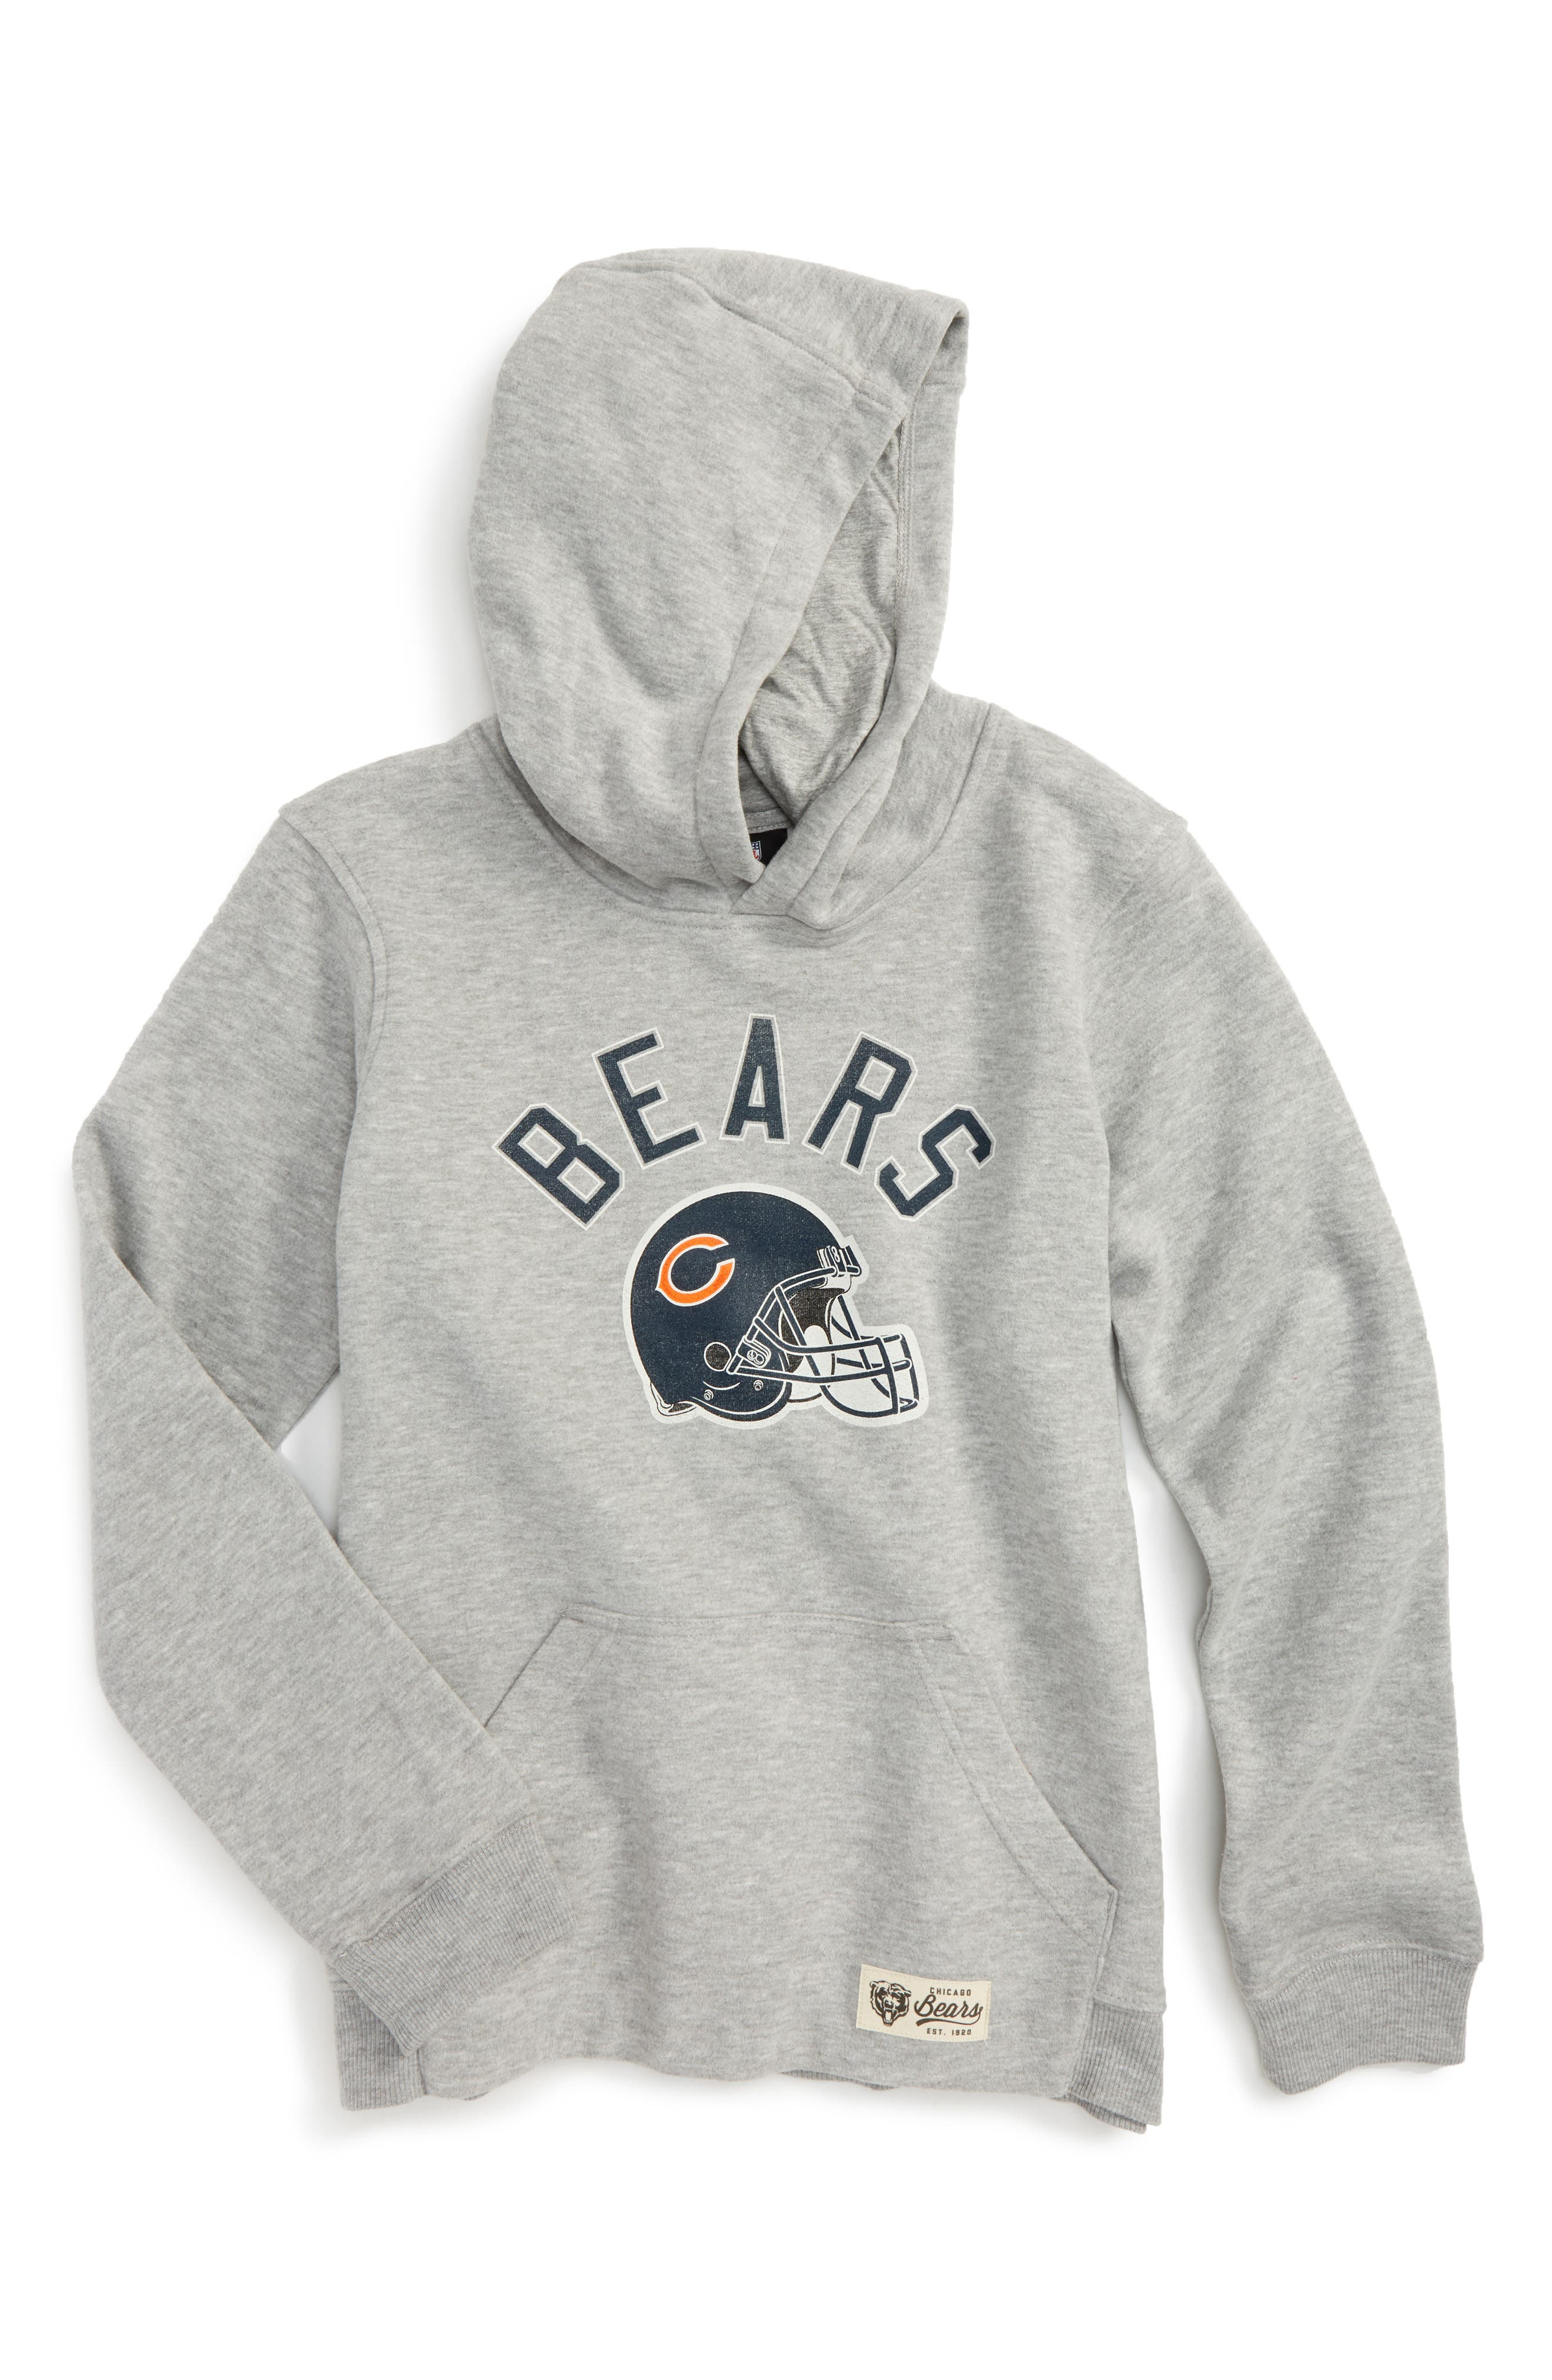 NFL Chicago Bears Pullover Hoodie,                             Main thumbnail 1, color,                             020